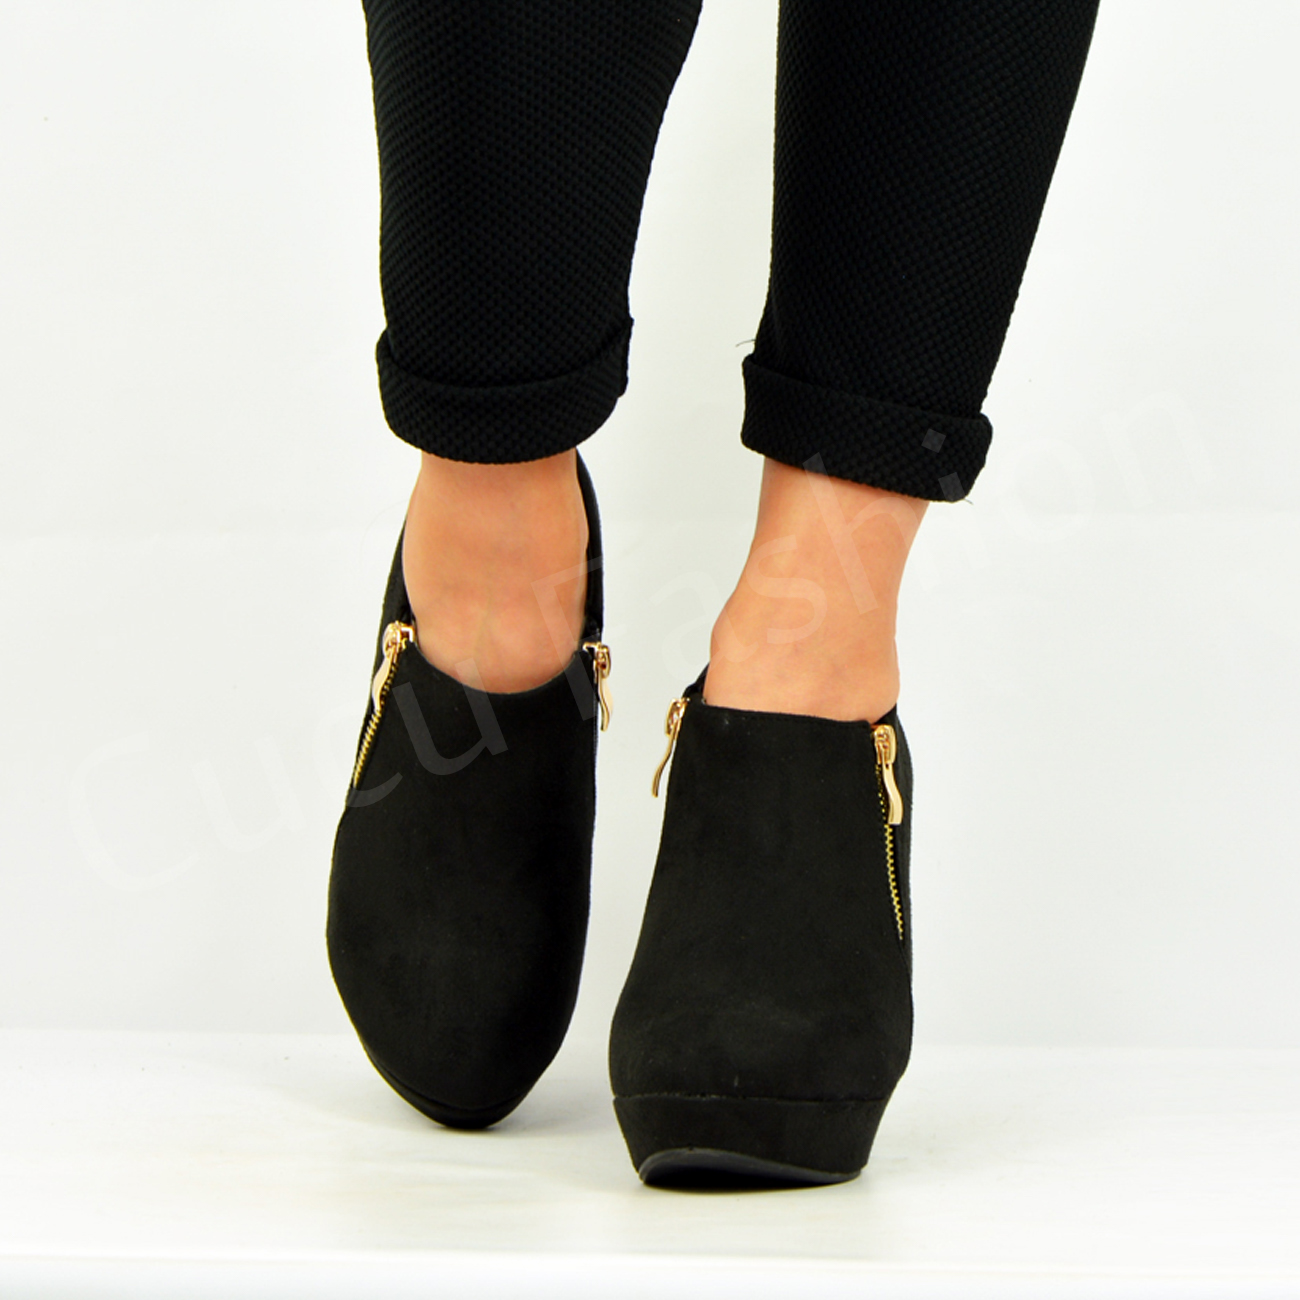 new womens ankle boots wedge platforms side zip